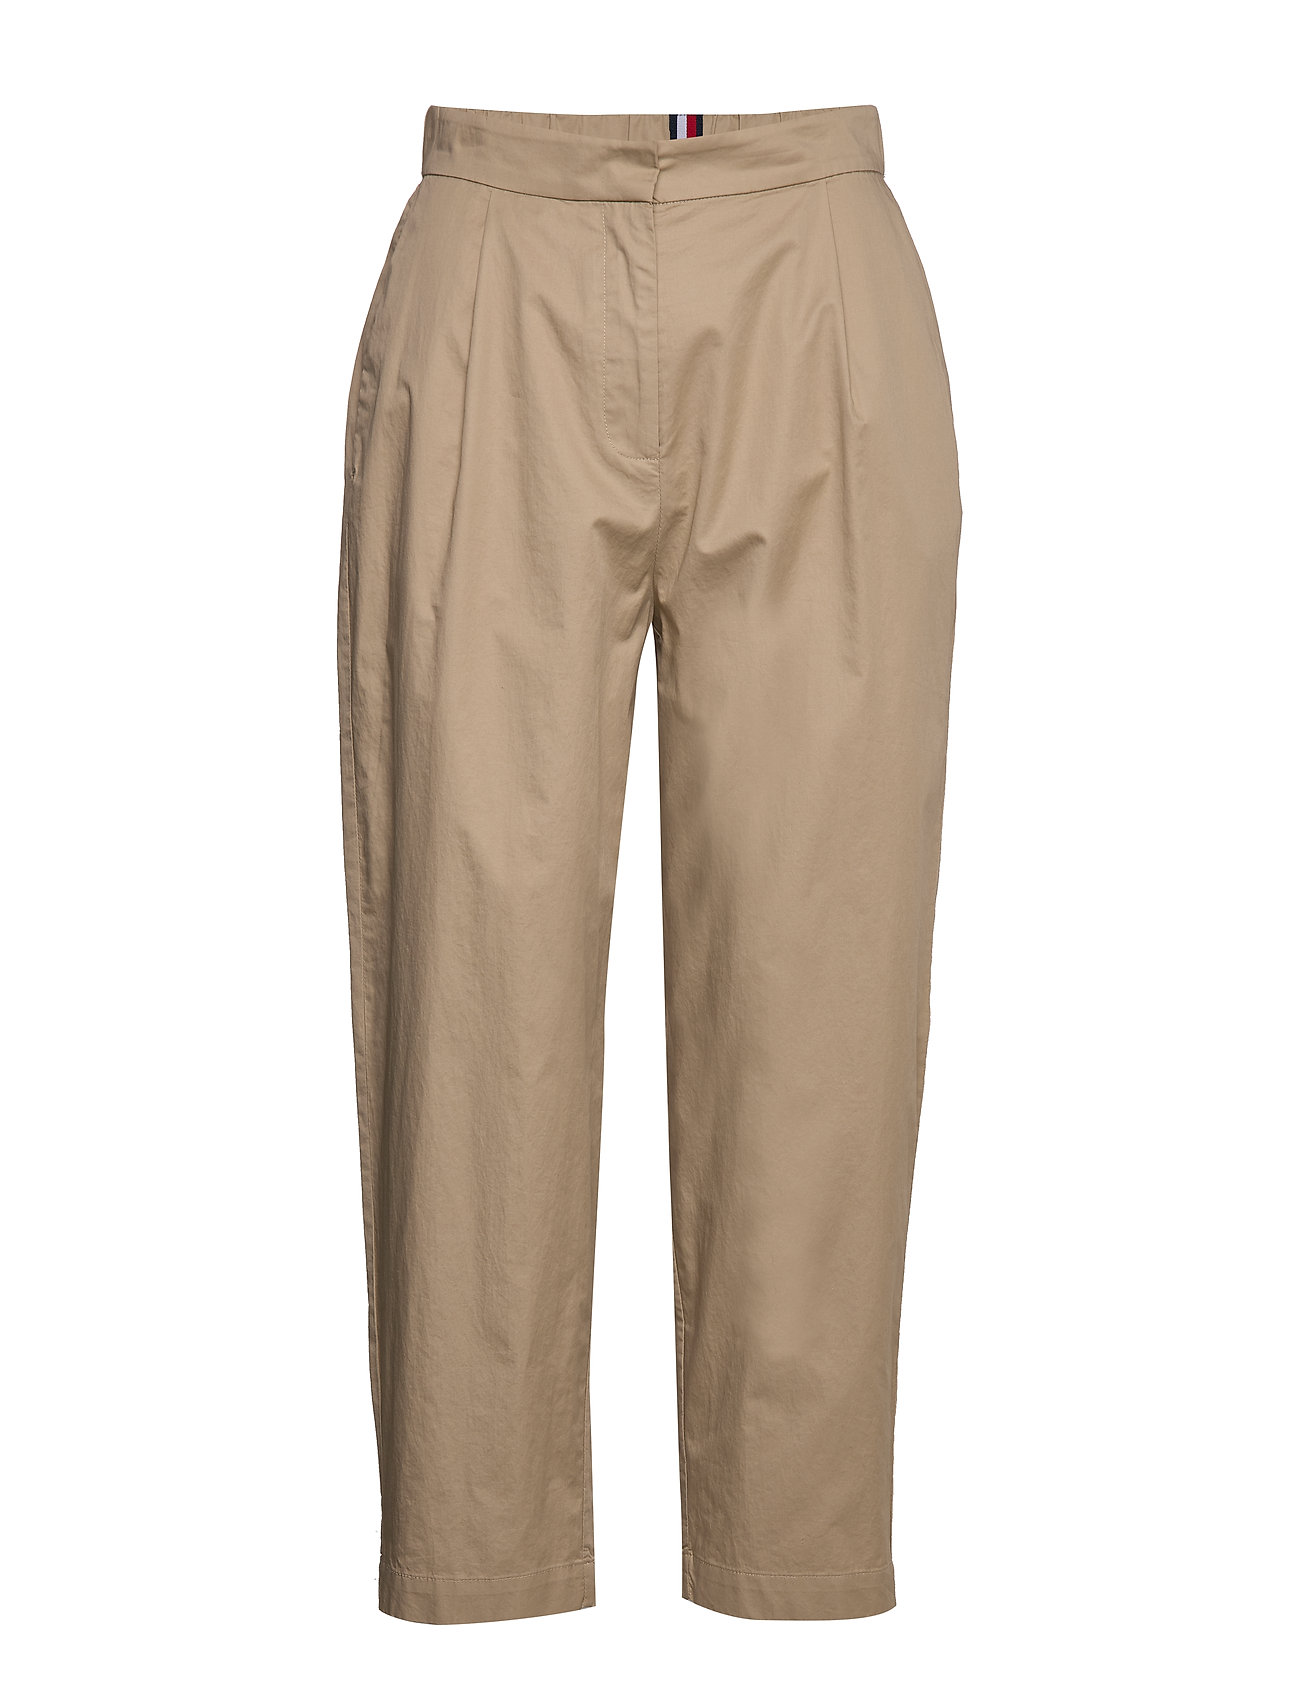 Tommy Hilfiger COTTON POPLIN TAPERED PANT - BEIGE